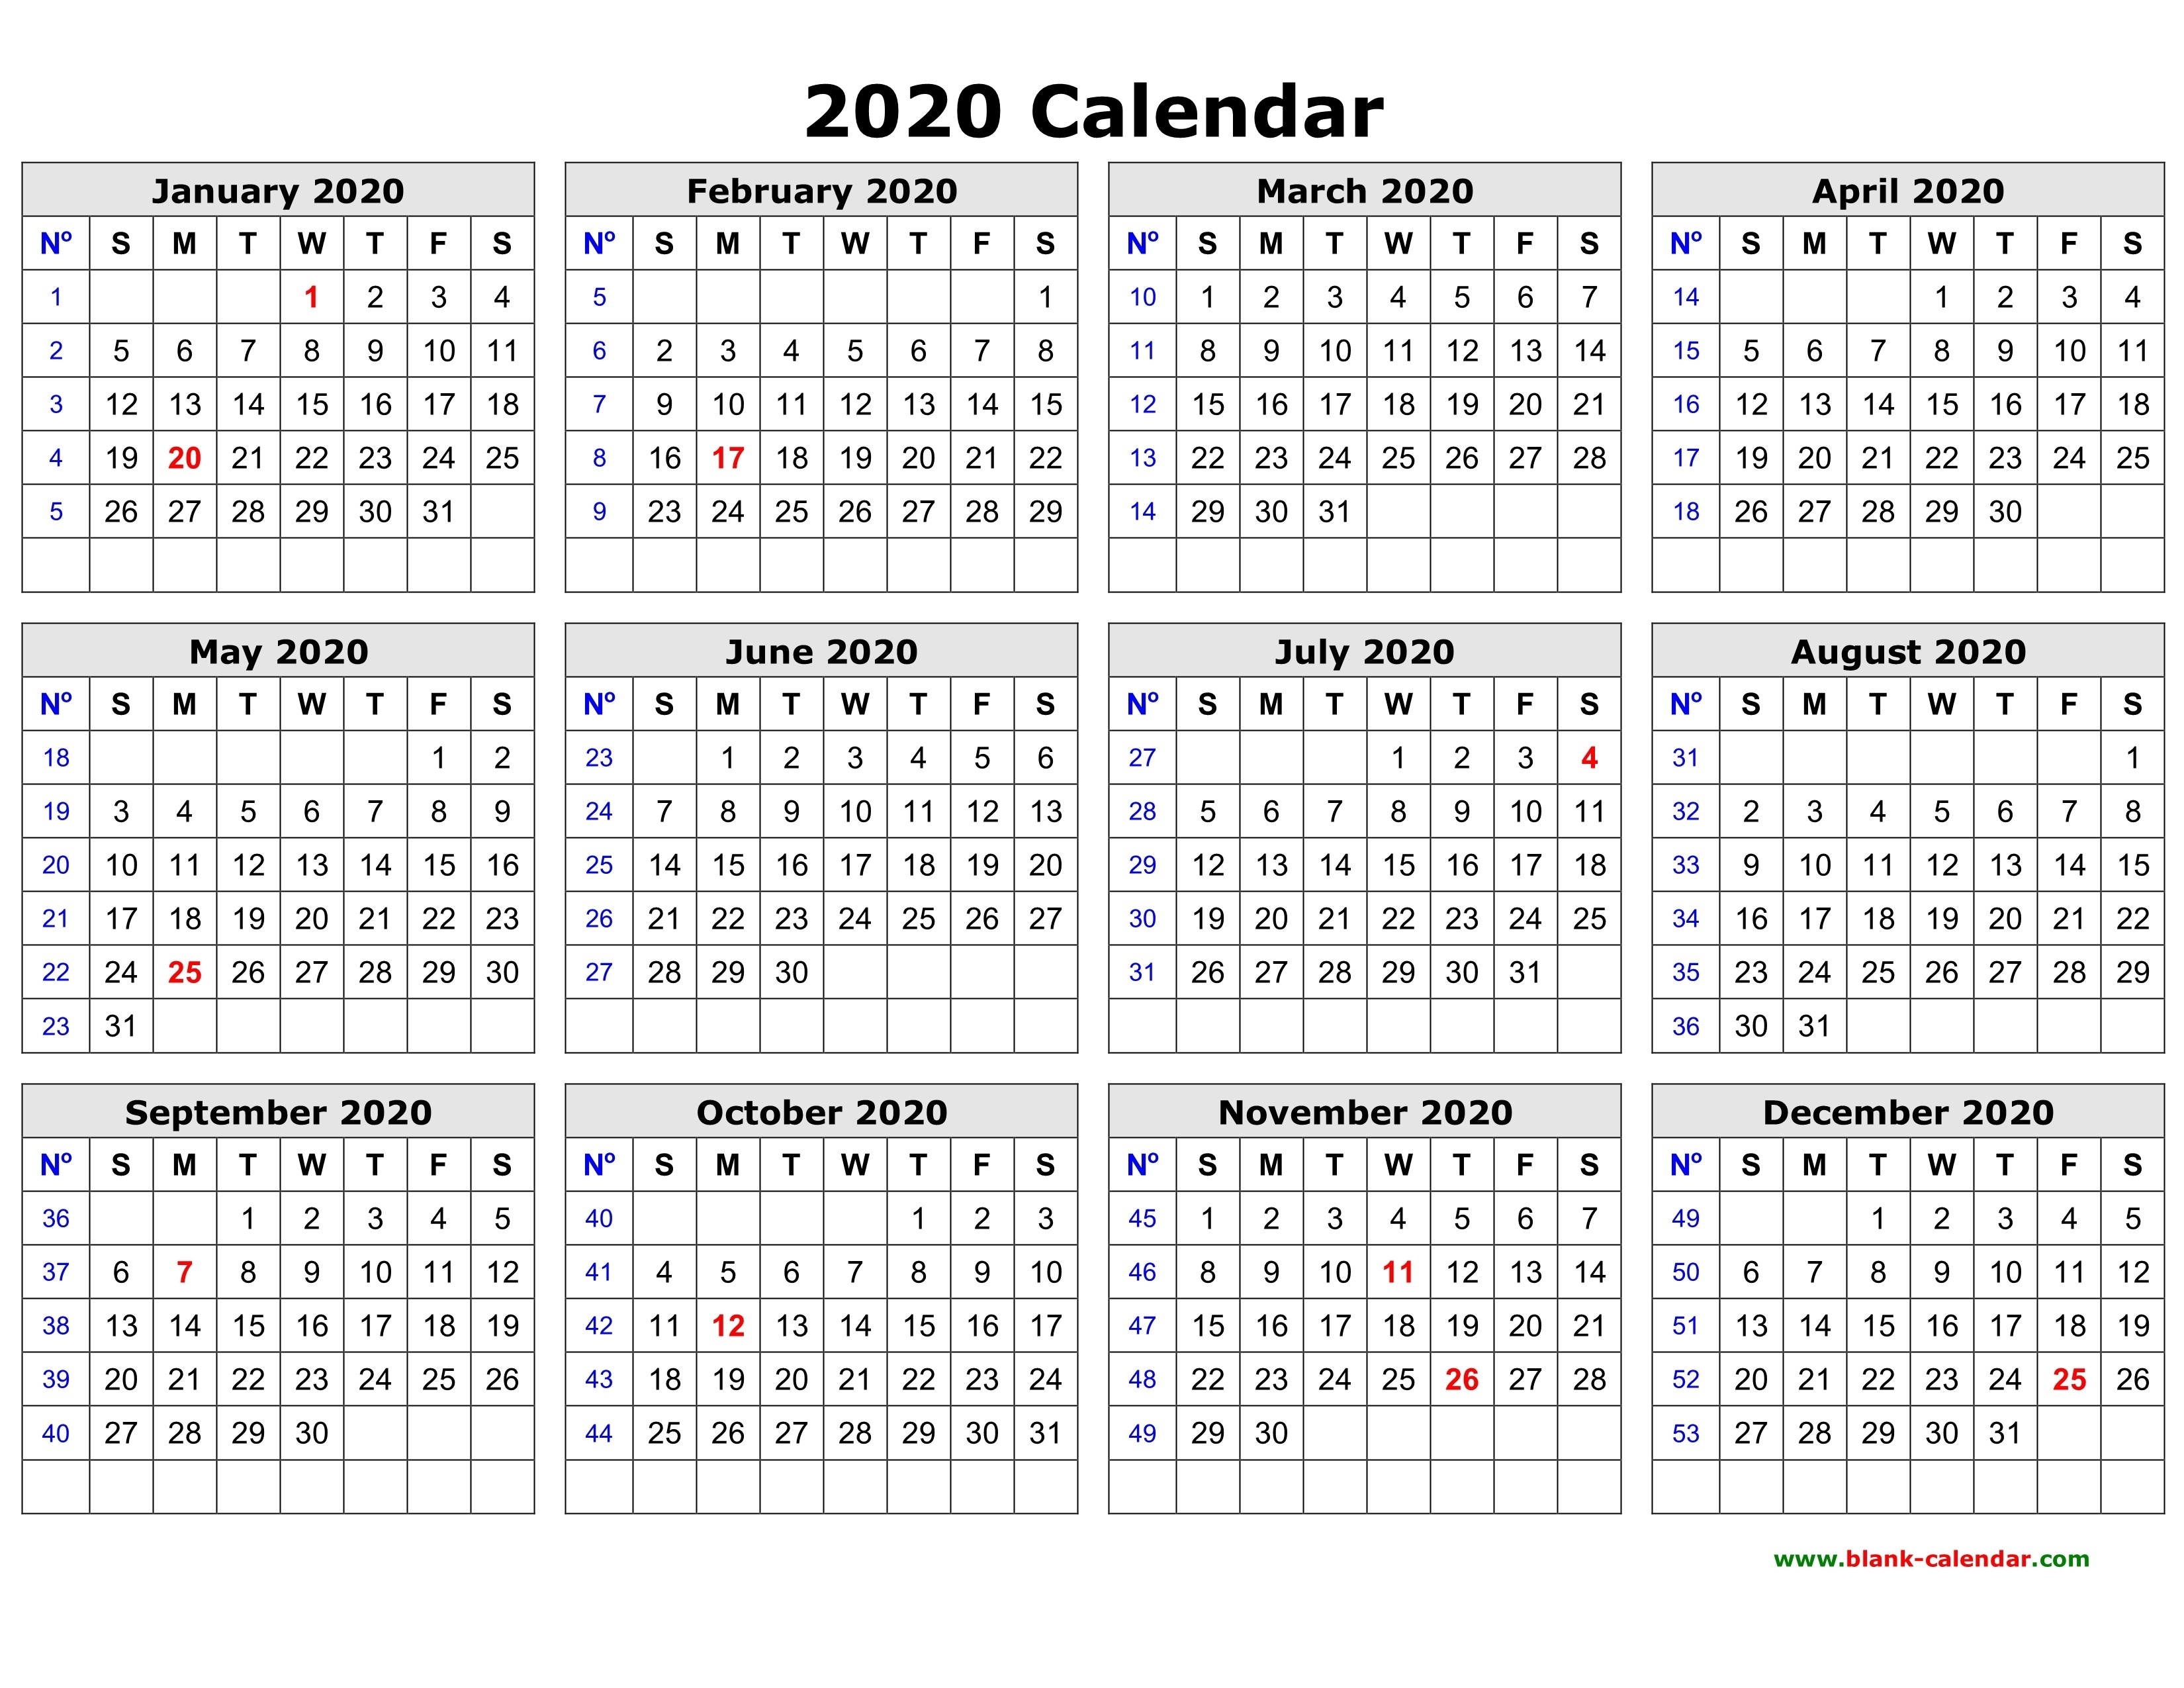 Free Download Printable Calendar 2020 In One Page, Clean Design.-6 Month Blank Calendar 2020